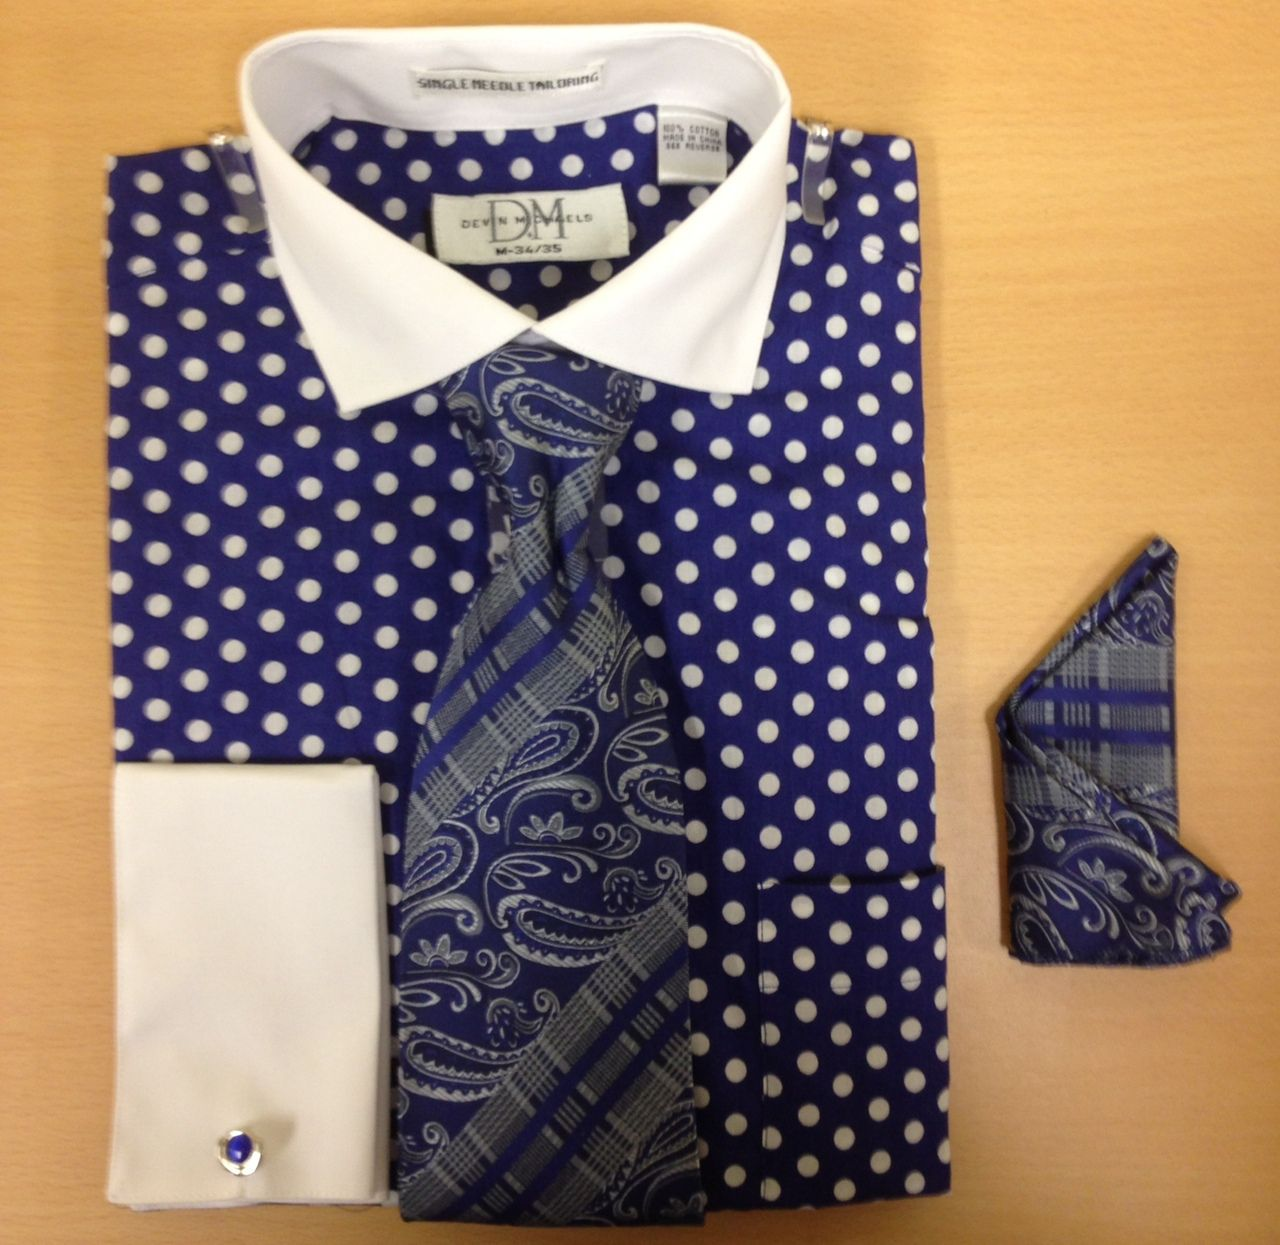 Men's Fashion Polka Dot Cufflink Dress Shirt Set - Navy/White